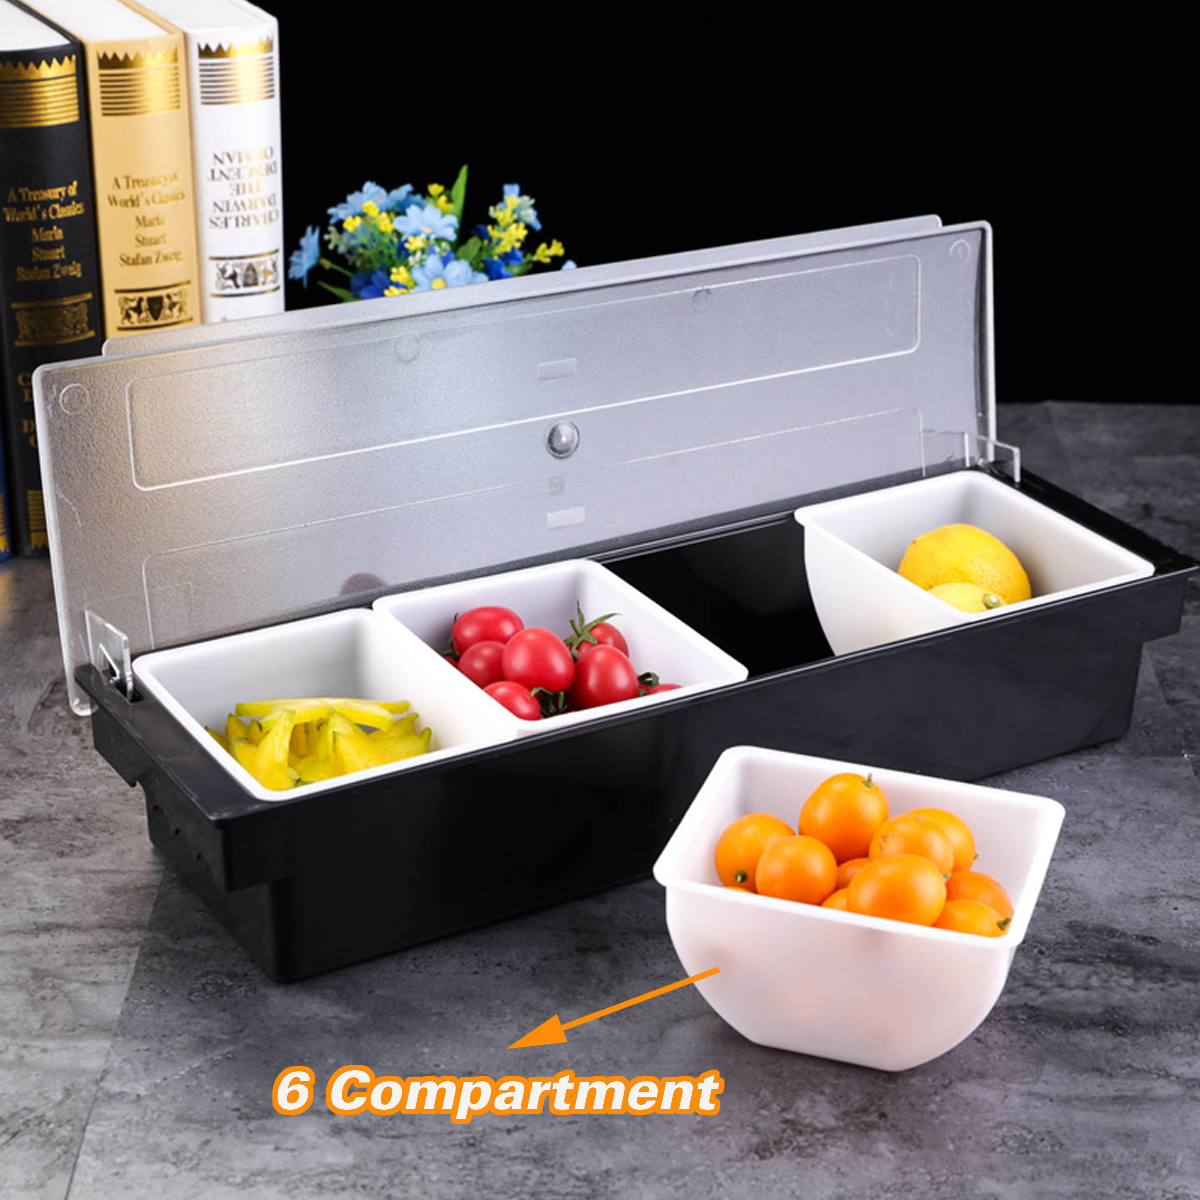 6 Compartment Divided Fruit Food Storage Case Box Kitchen Storage Container Garnish Crisper